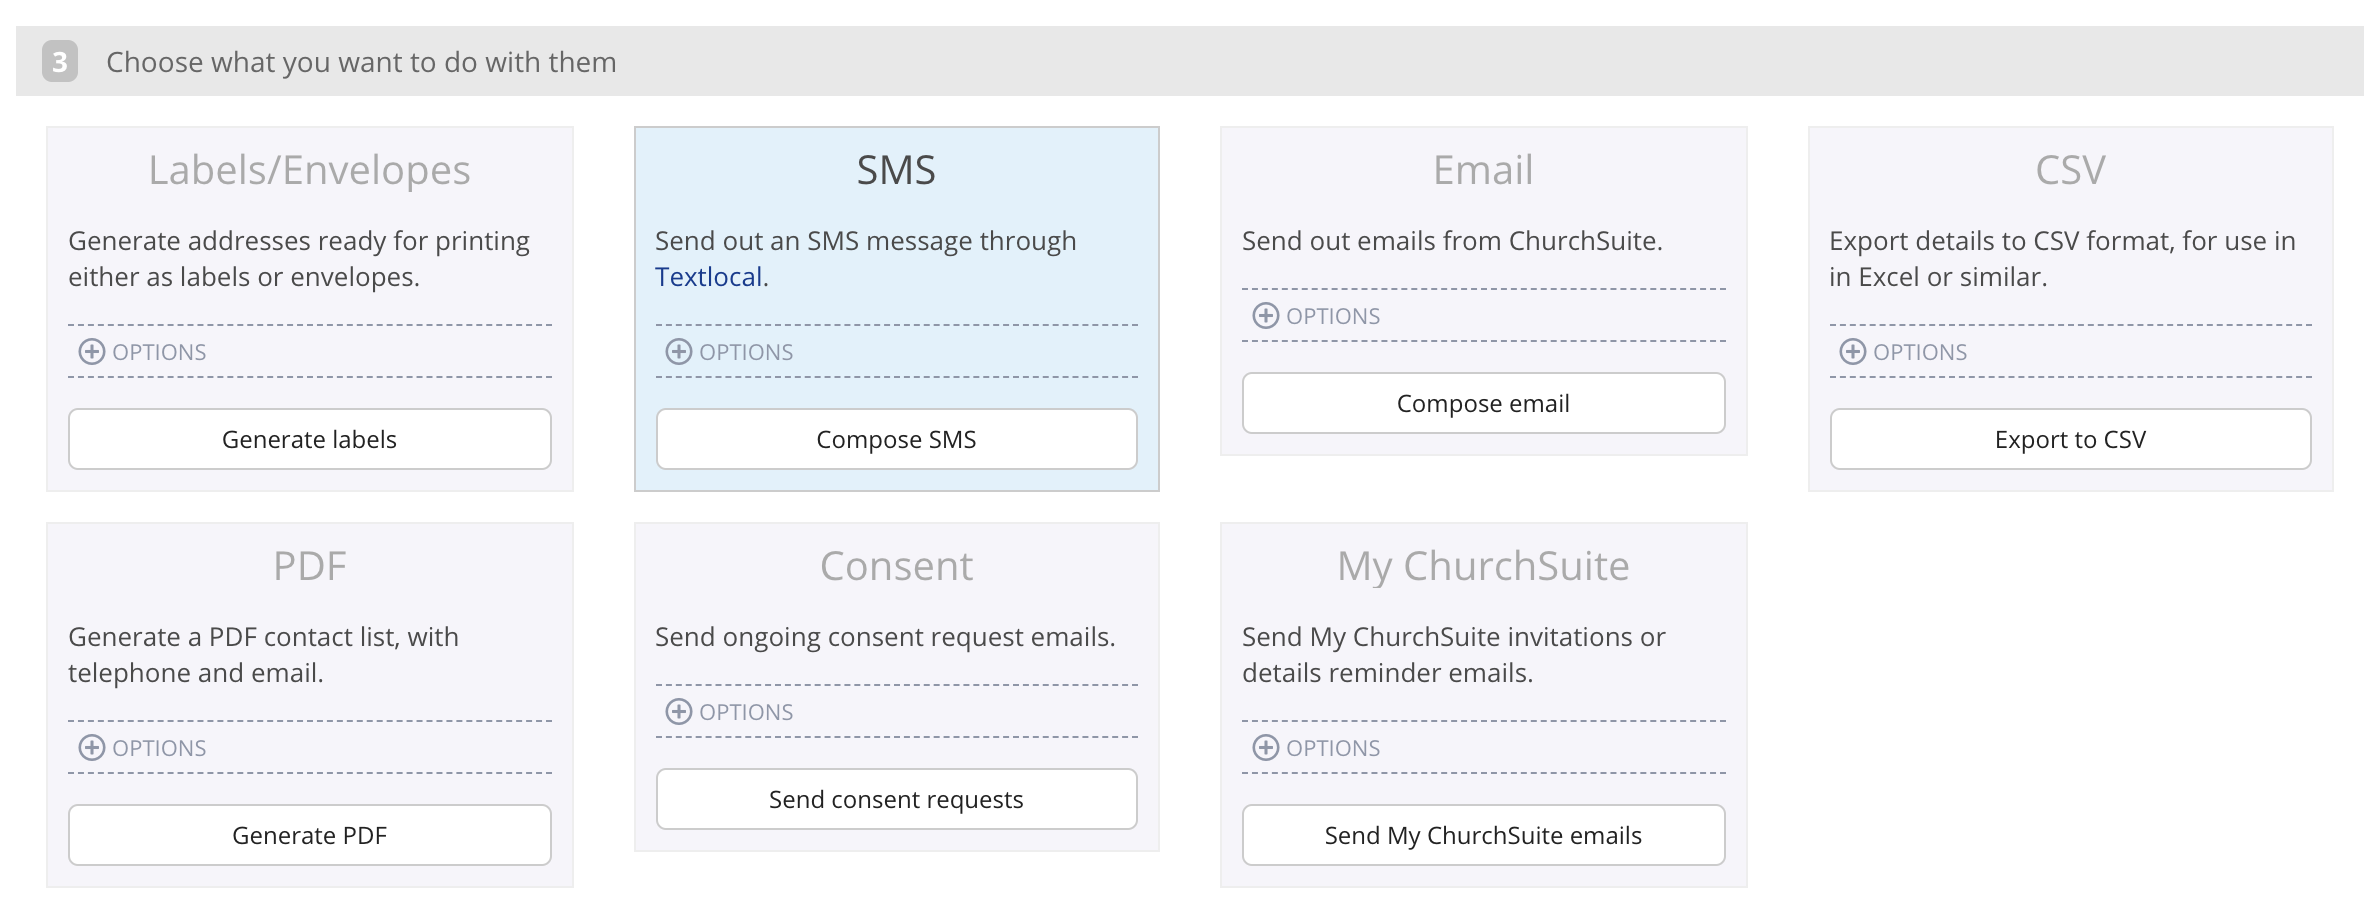 Sending SMS messages through Textlocal - ChurchSuite Support Articles